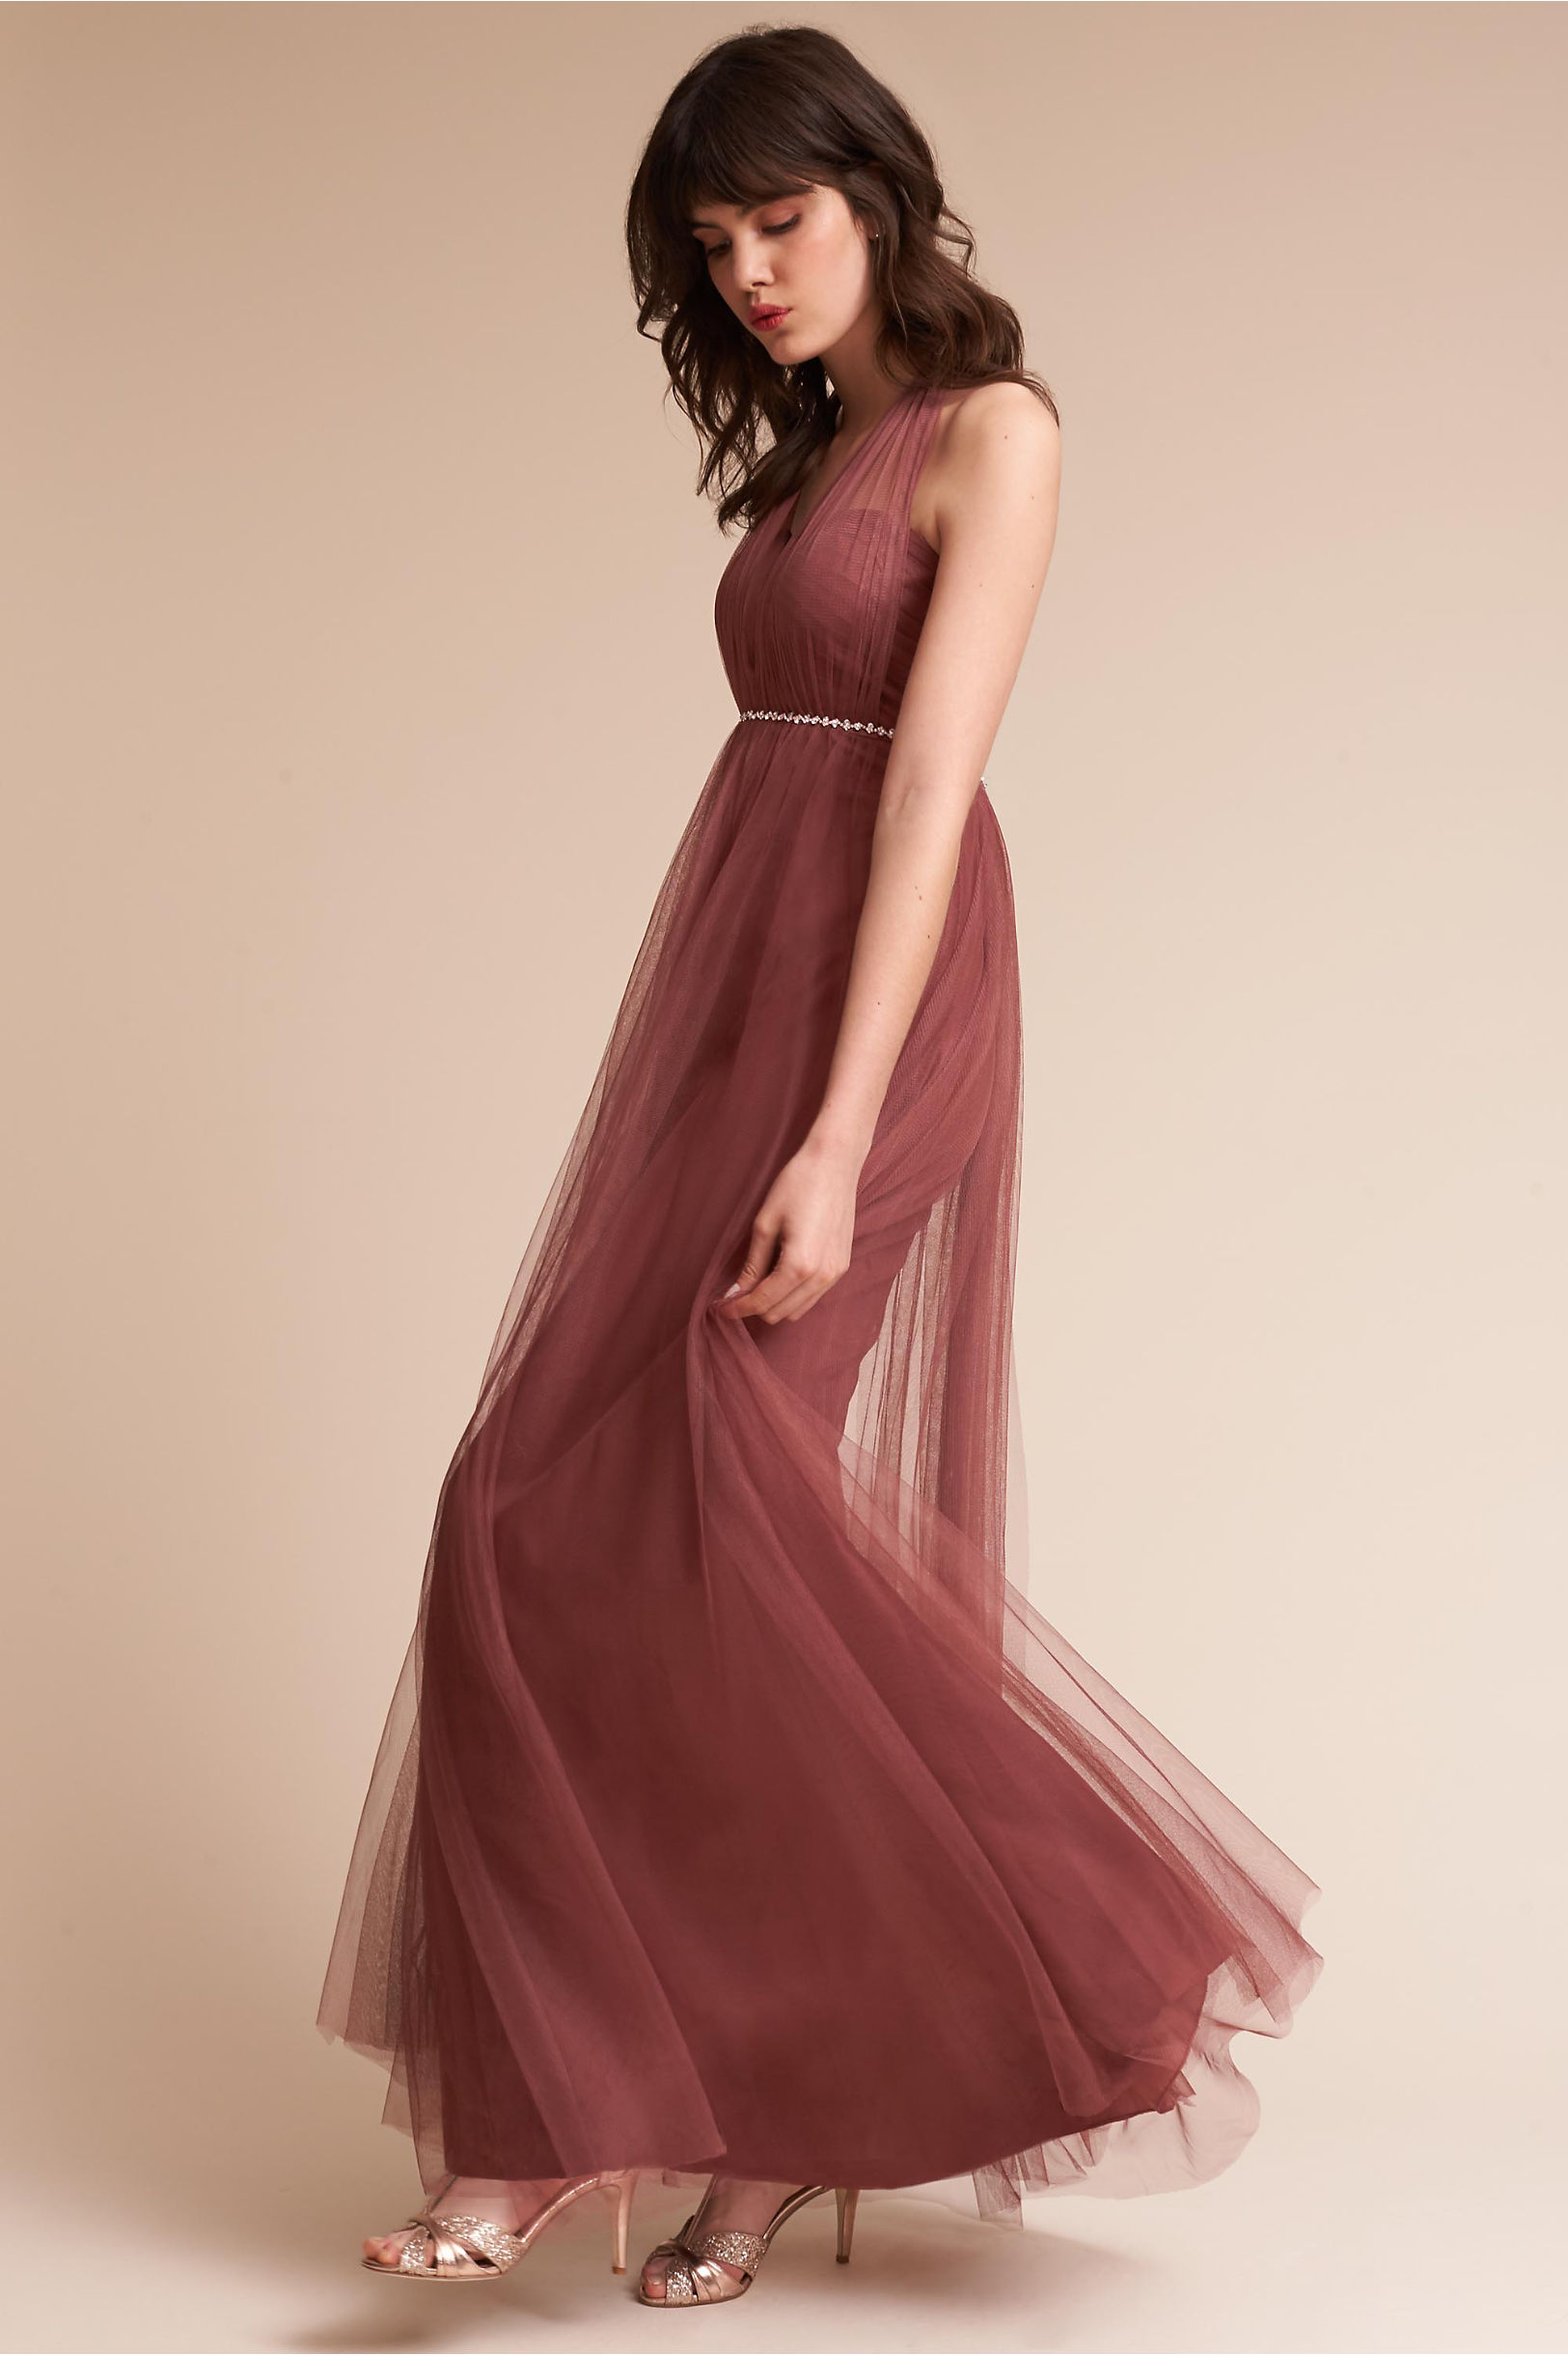 Annabelle dress in sale bhldn jenny yoo cinnamon rose annabelle dress bhldn ombrellifo Images